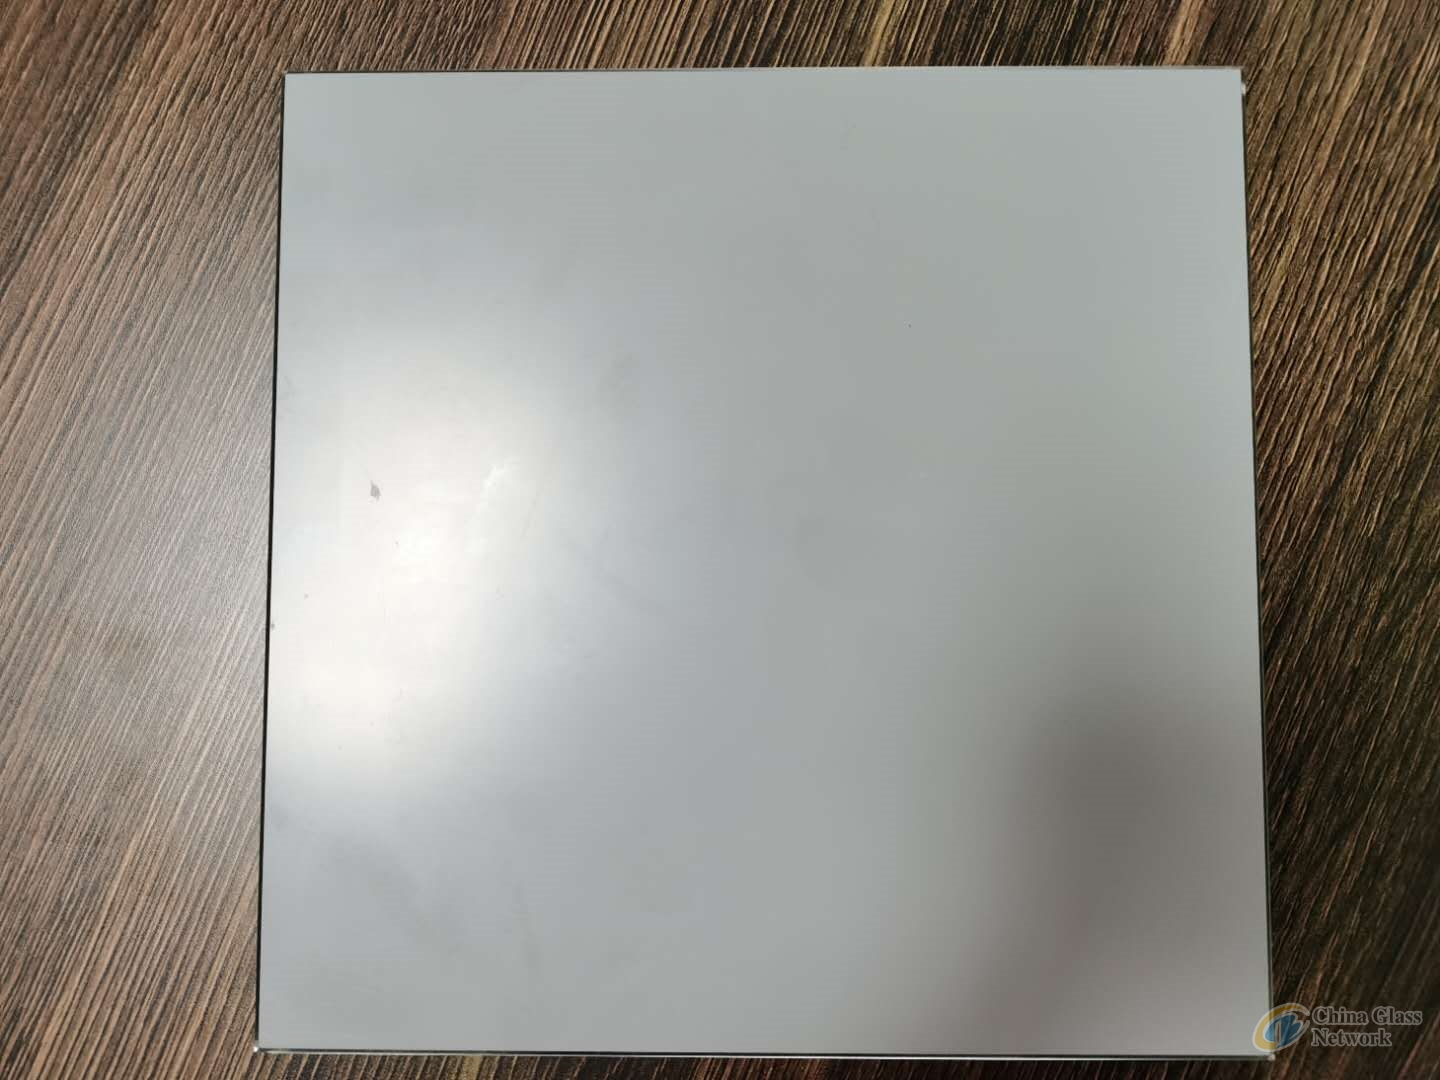 4mm  5mm 6mm 8mm tempered glass Ultra Clear silver mirror for buildings